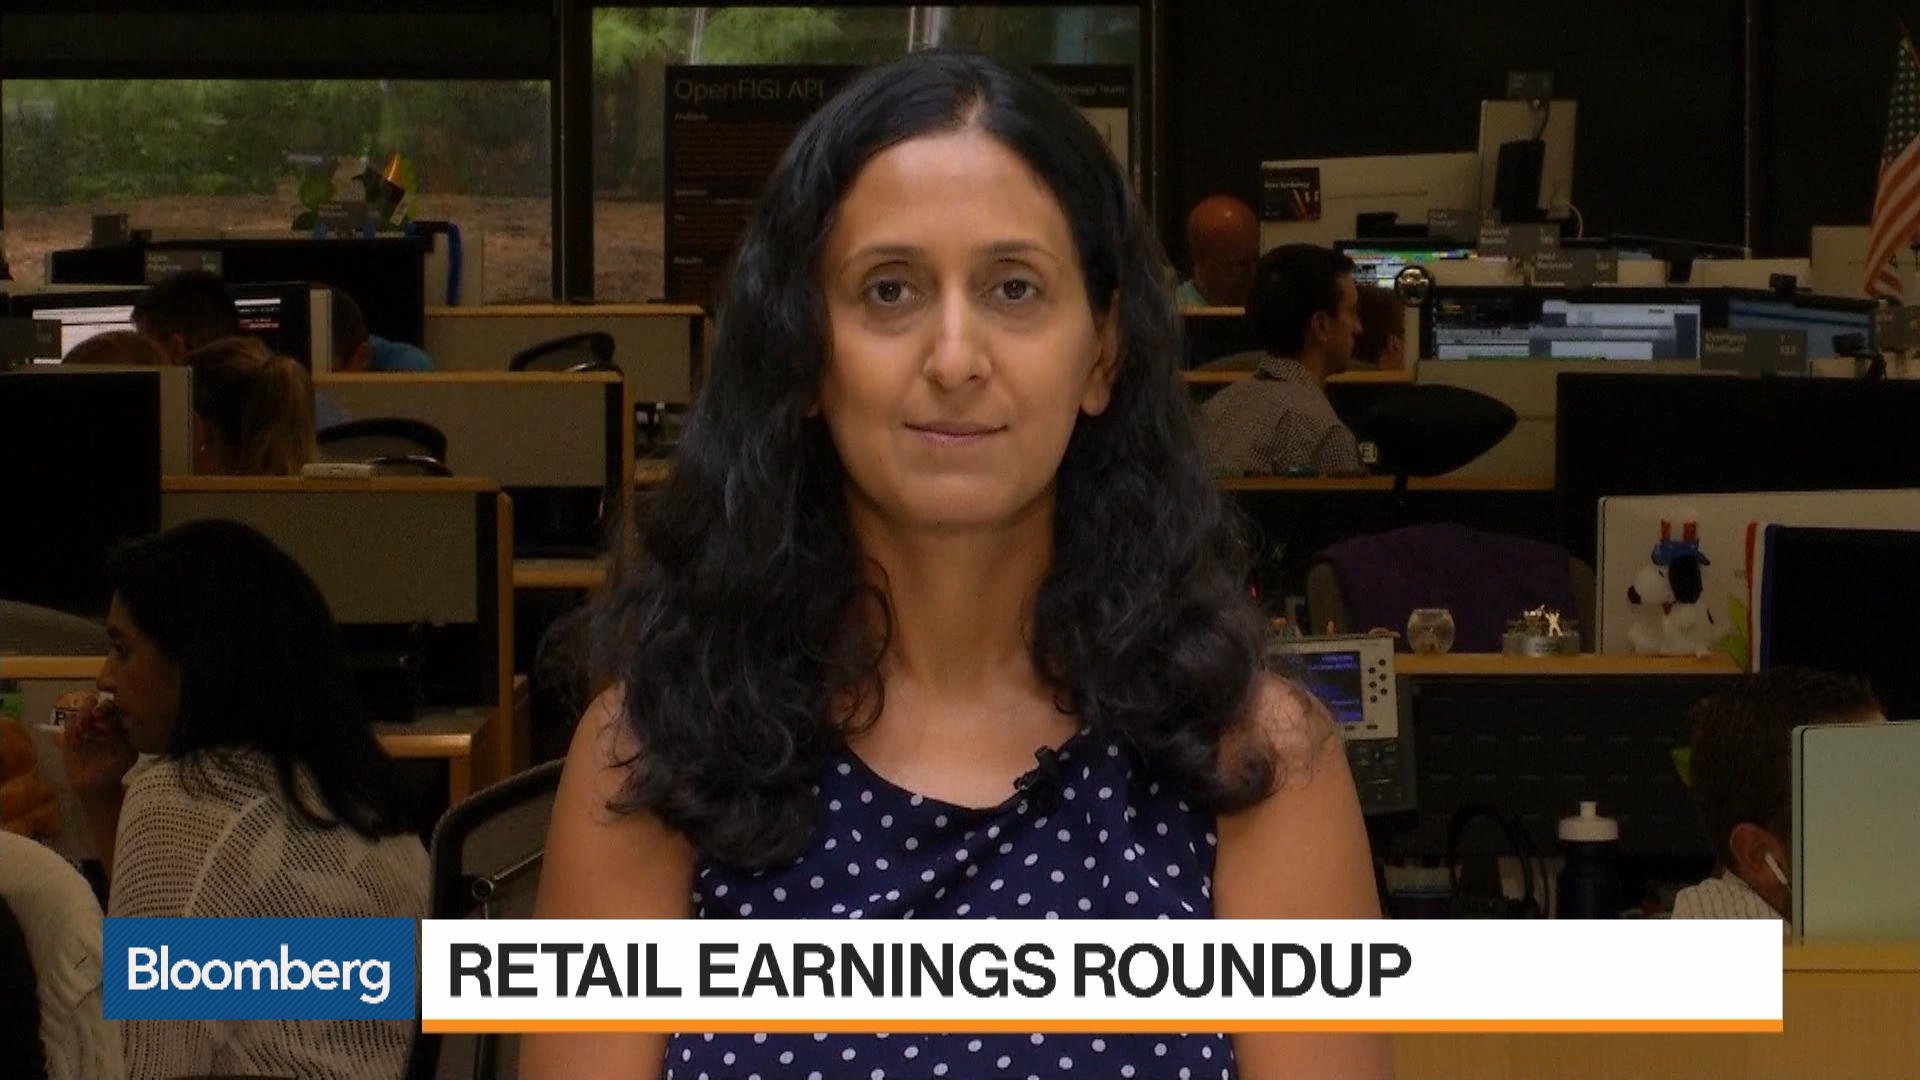 Kohl's, TJX Highlight Ups and Downs of Retail Earnings – Bloomberg